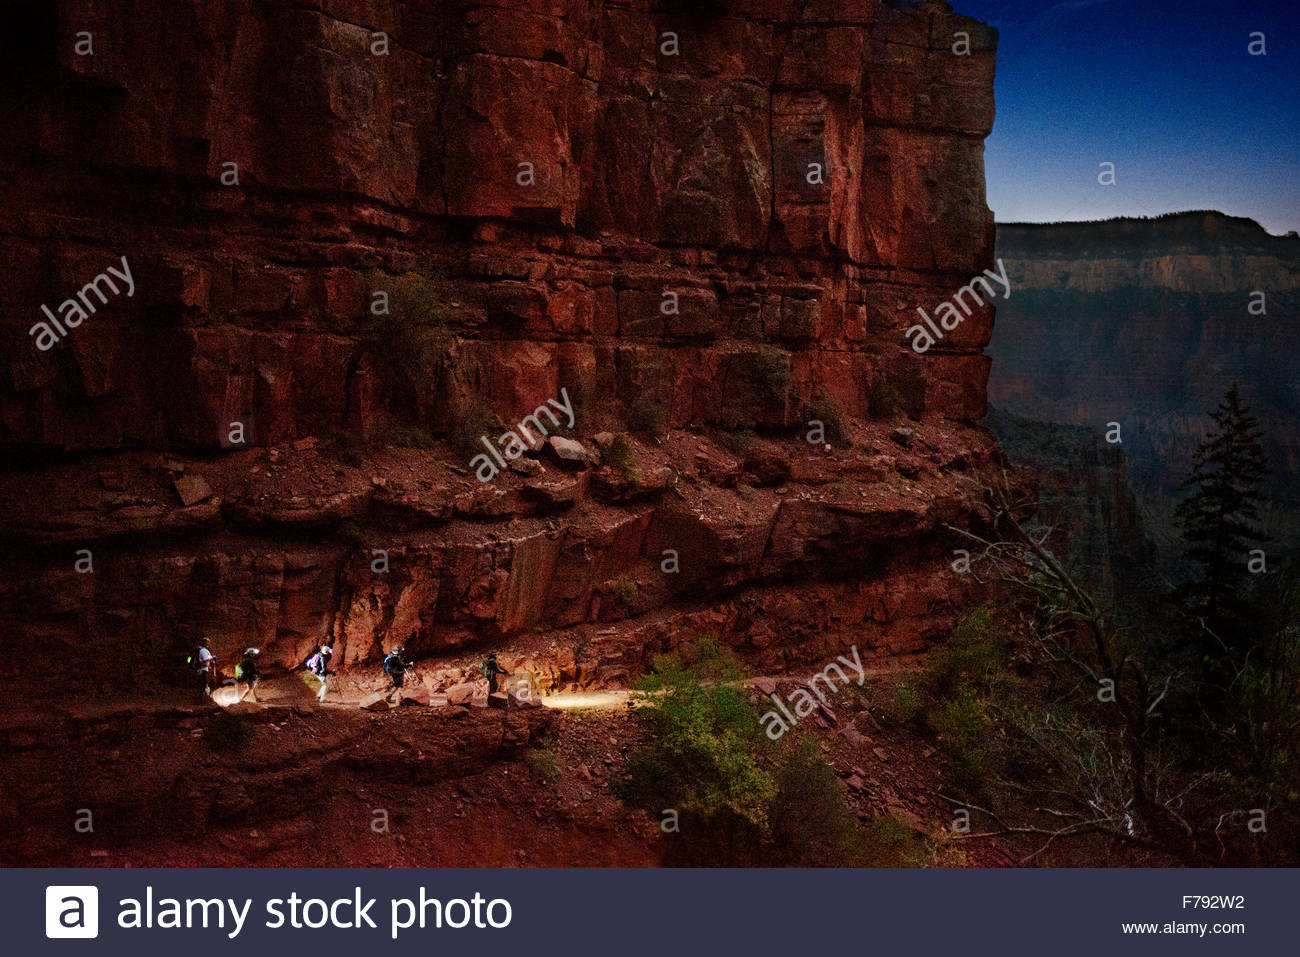 Descending down the North Rim of the Grand Canyon on the North Kaibab Trail. before sunrise trail illuminated by - Stock Image